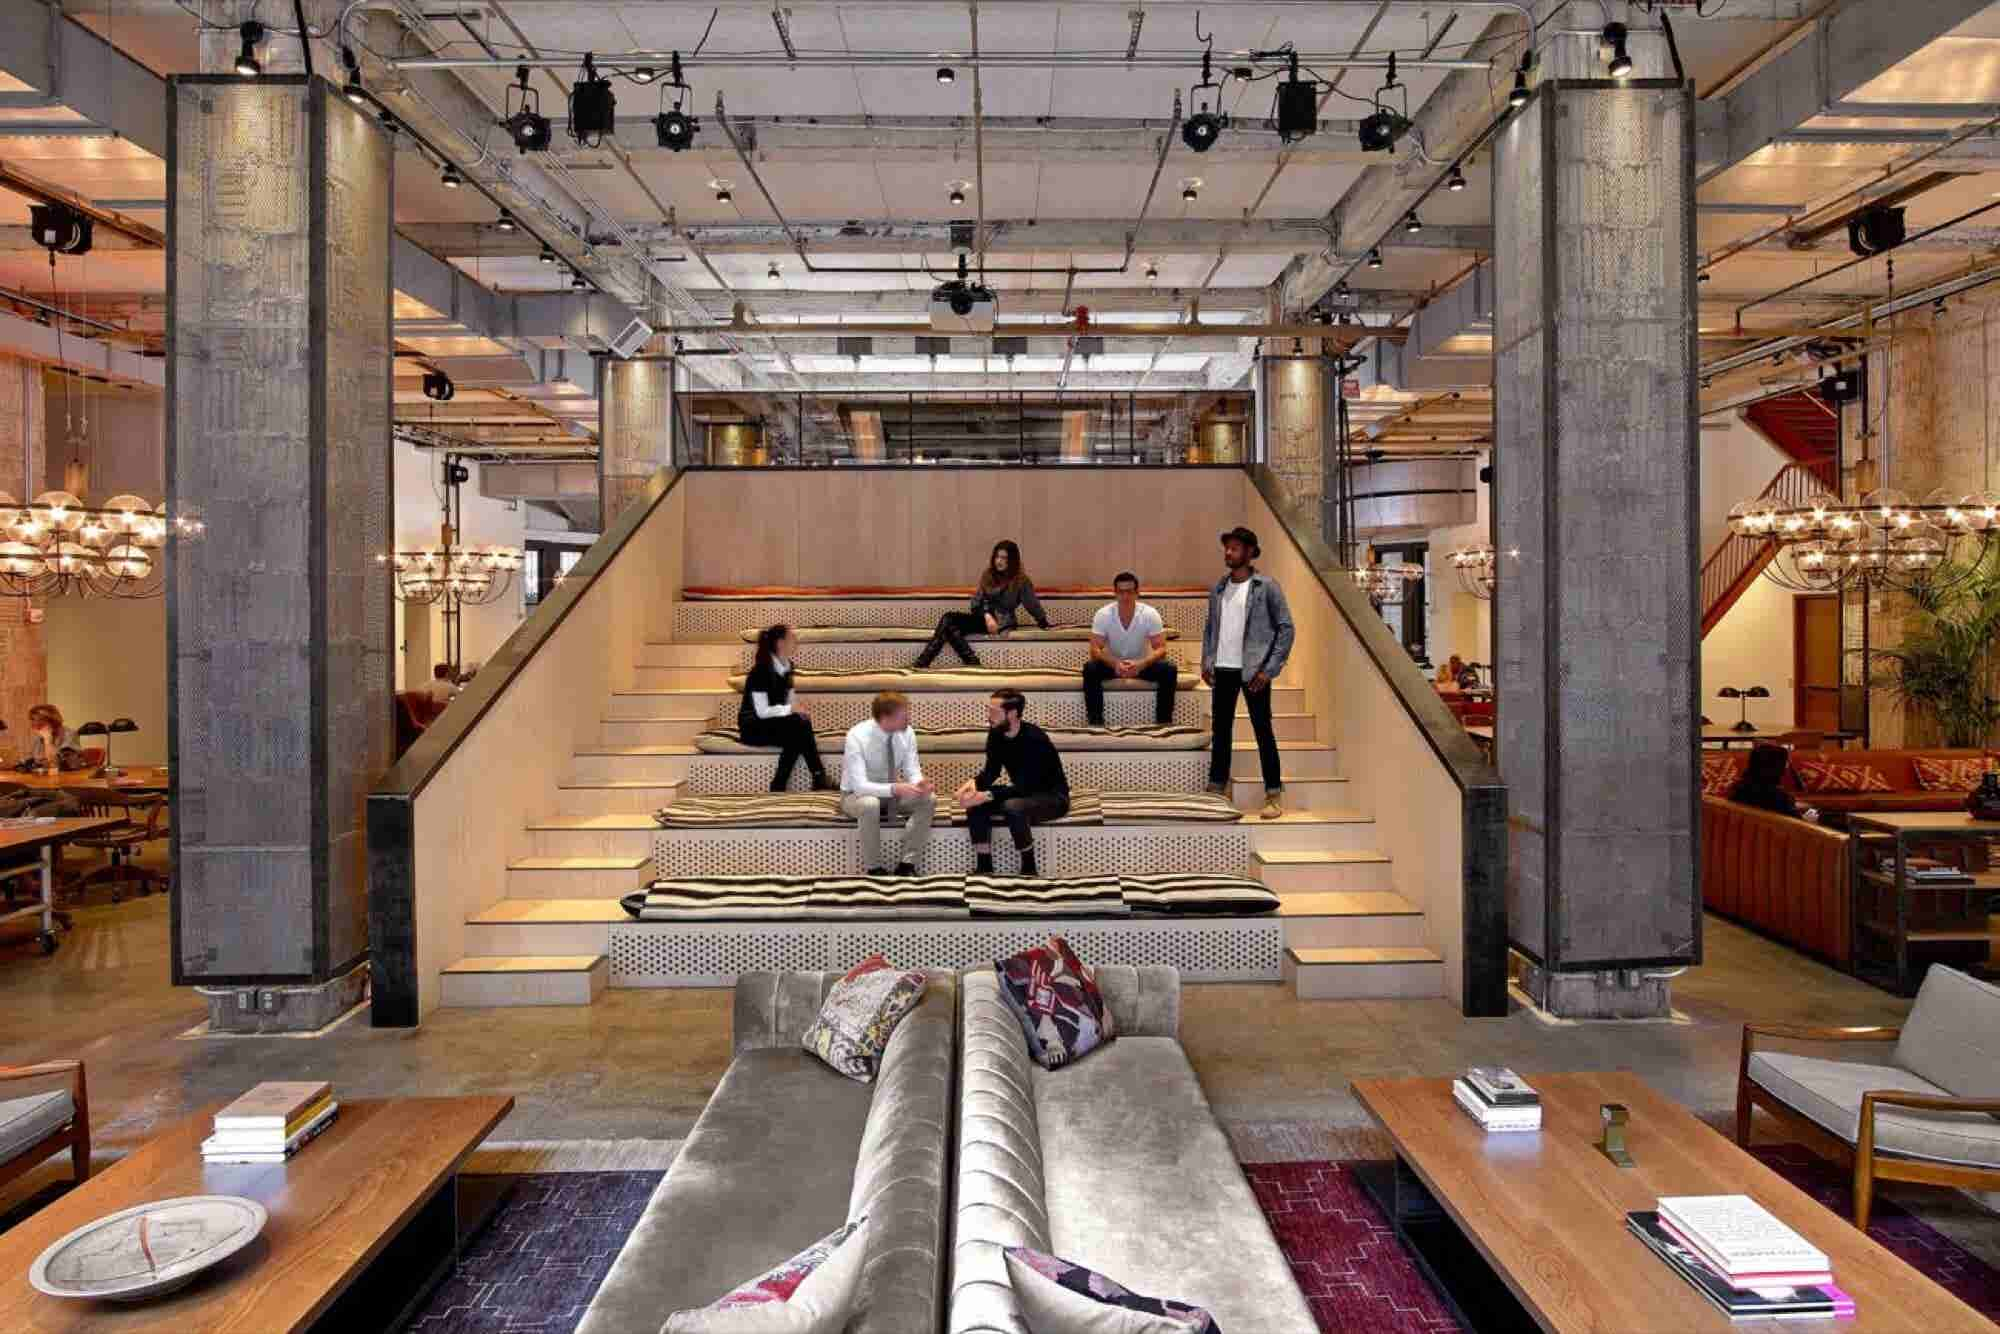 Tour This Upscale Coworking Space That Strives to Energize and Inspire Its Members